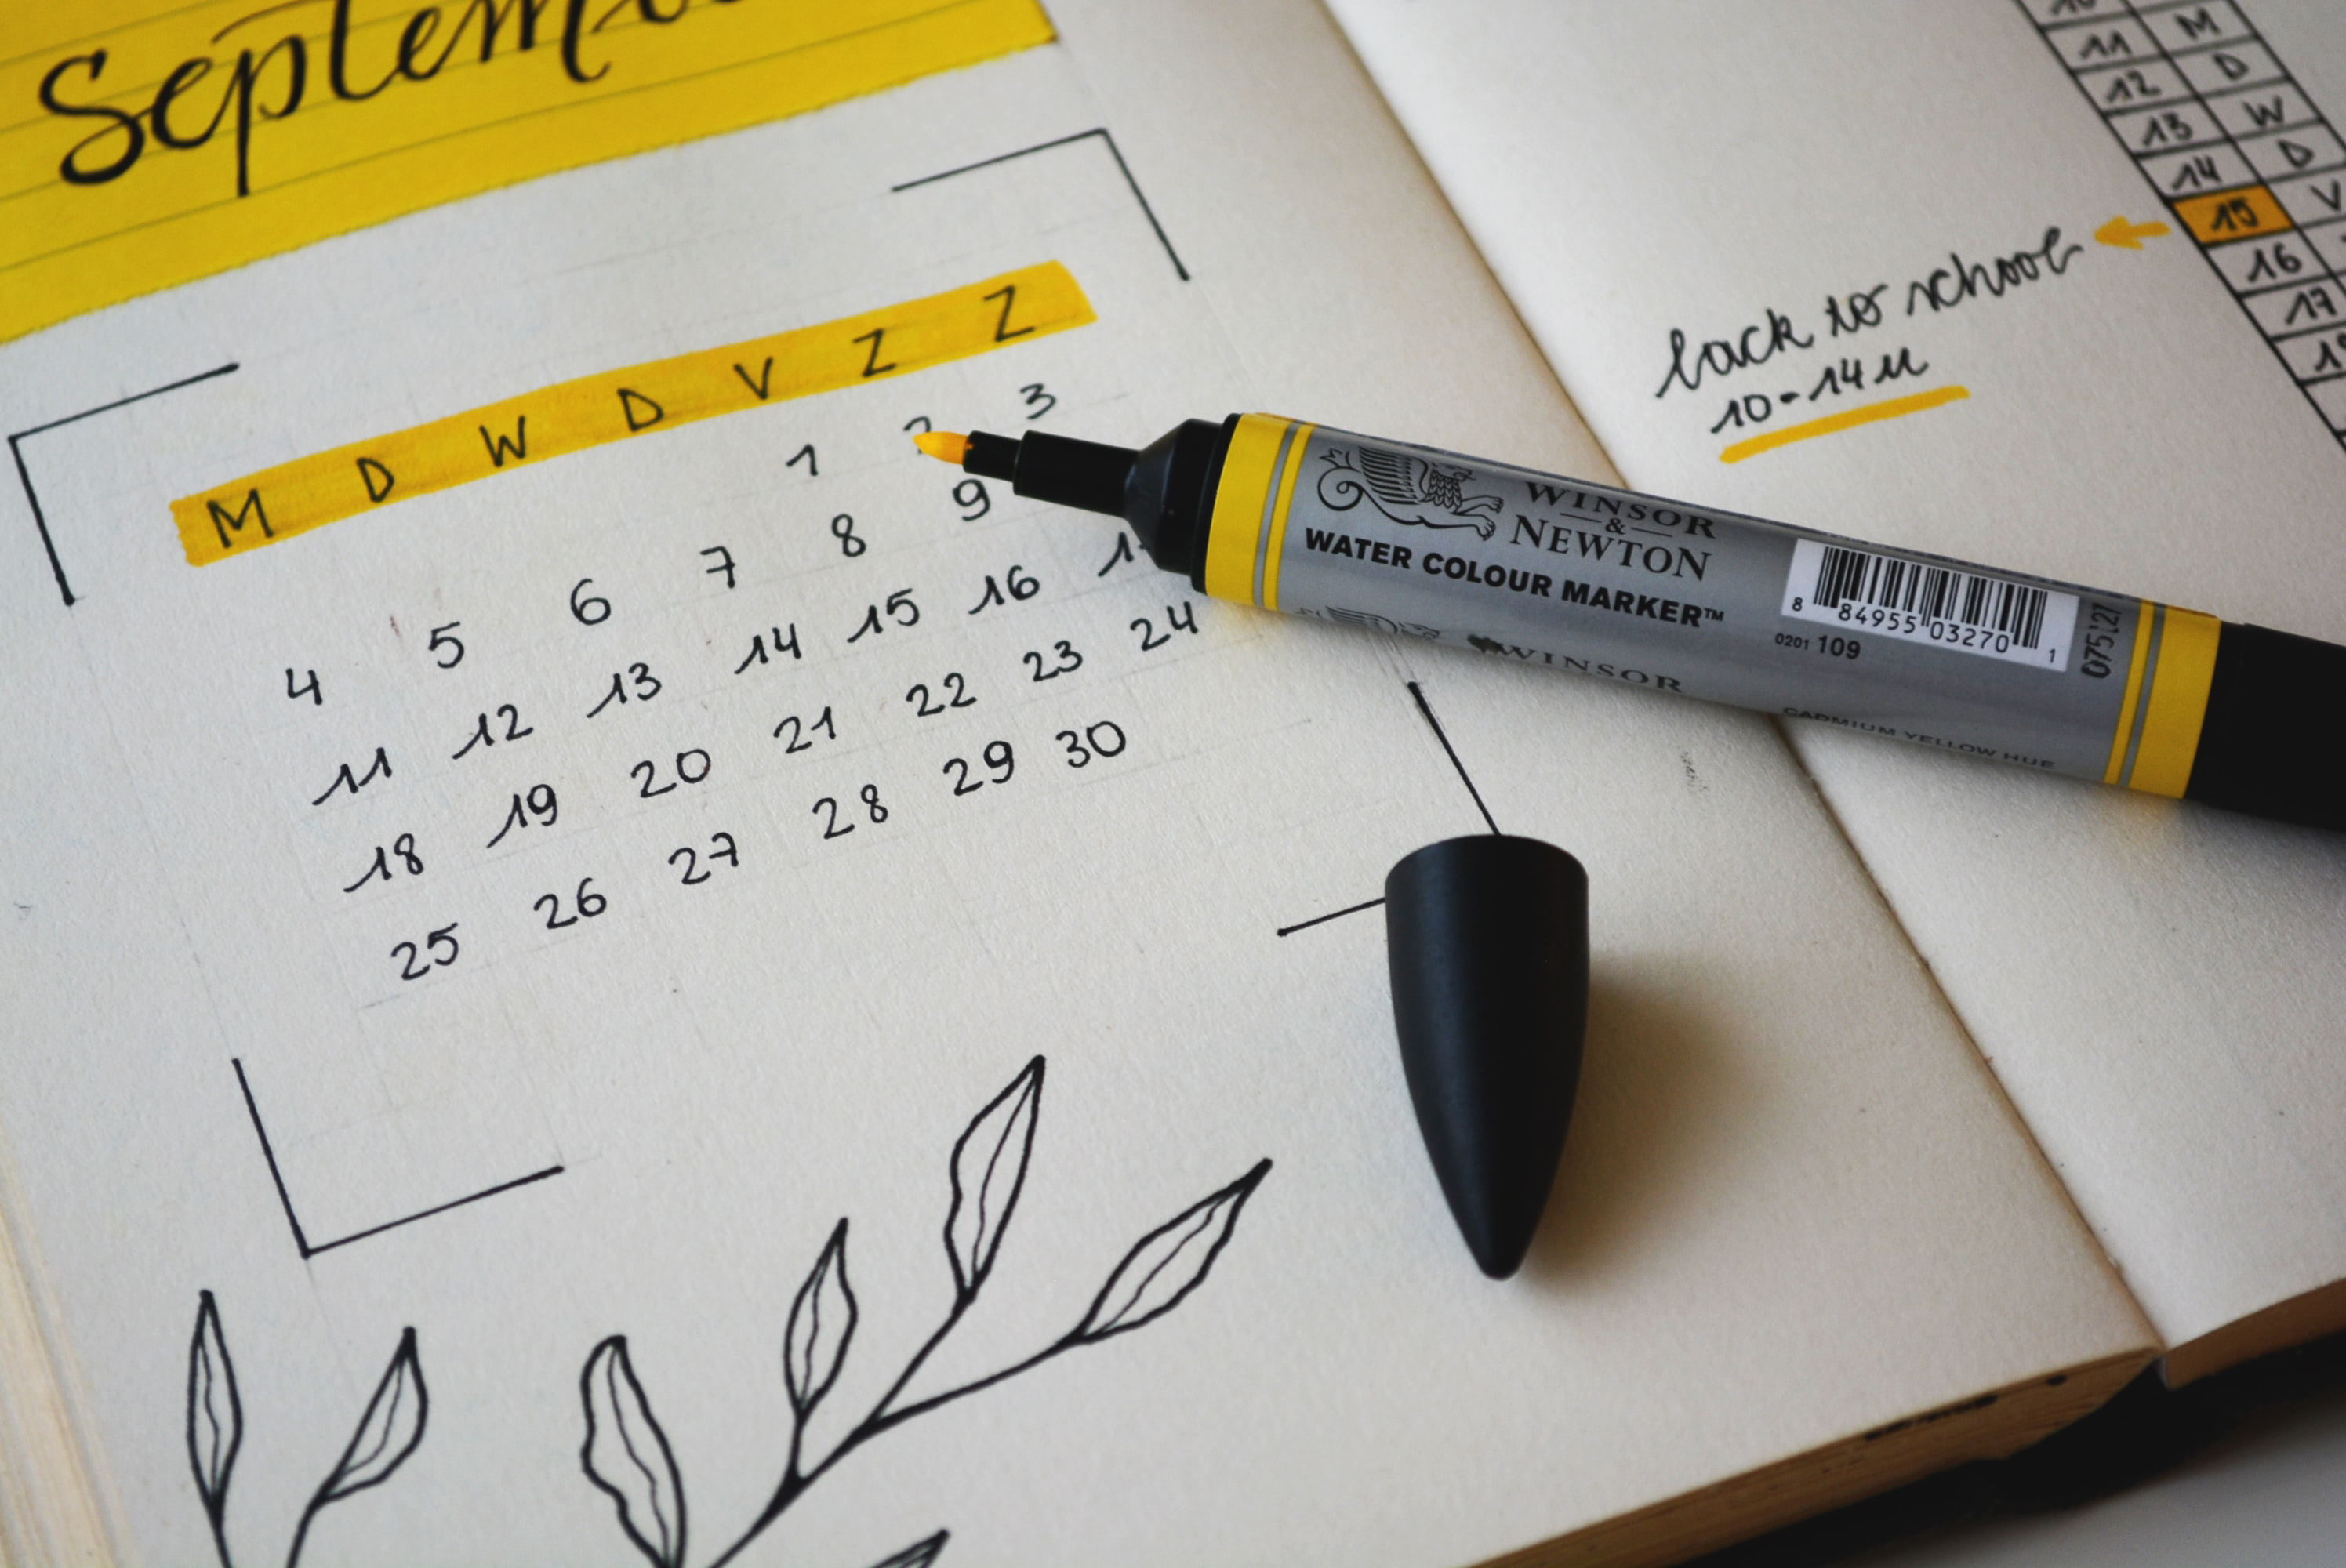 Monthly planner open to September with yellow highlighter sitting open on top